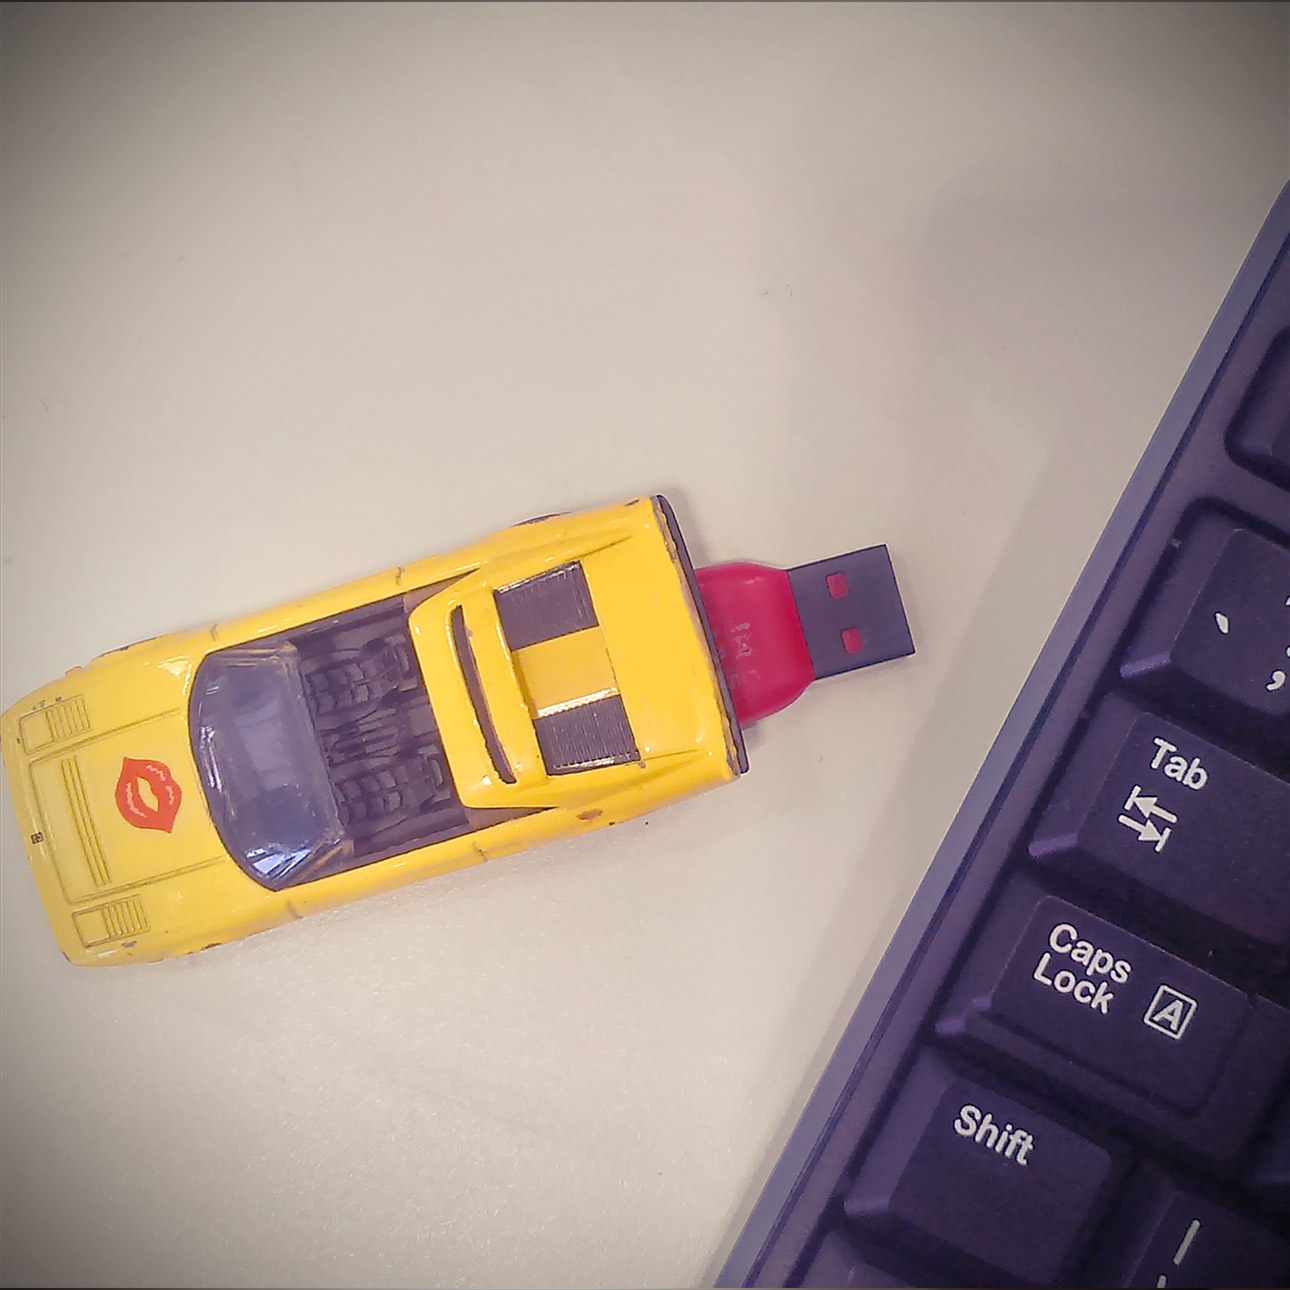 Toy car flash drive